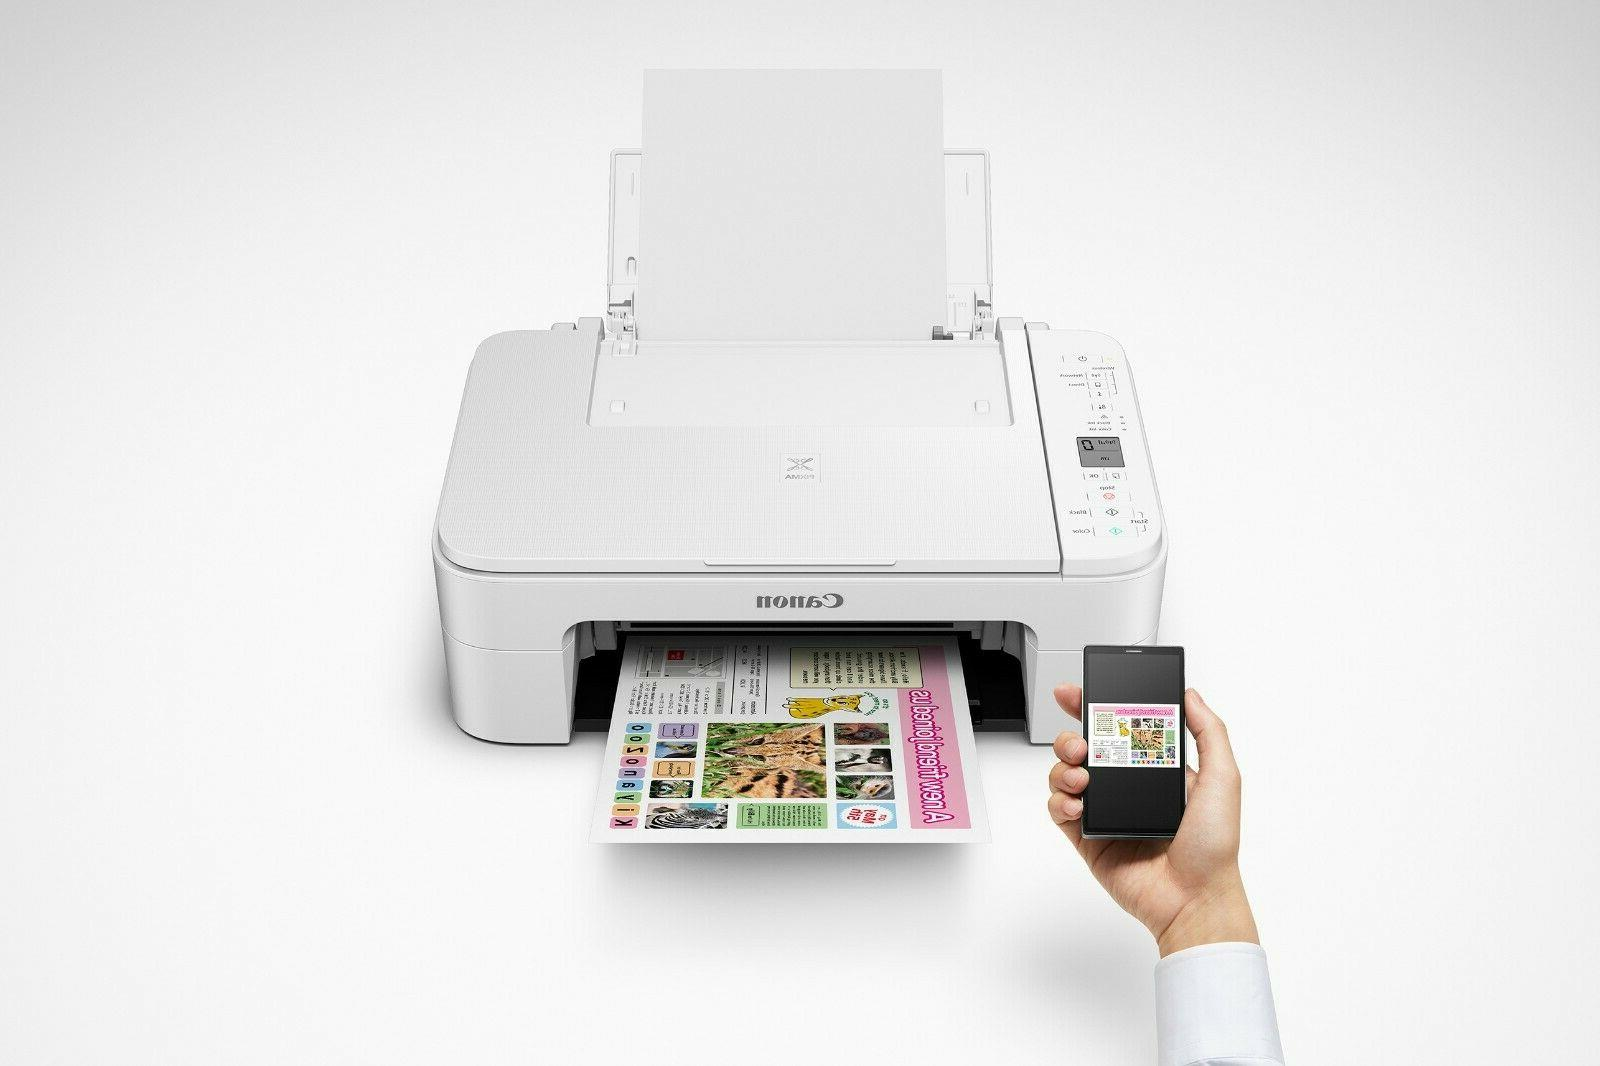 Printers All In One Wireless On Office Compact Desk